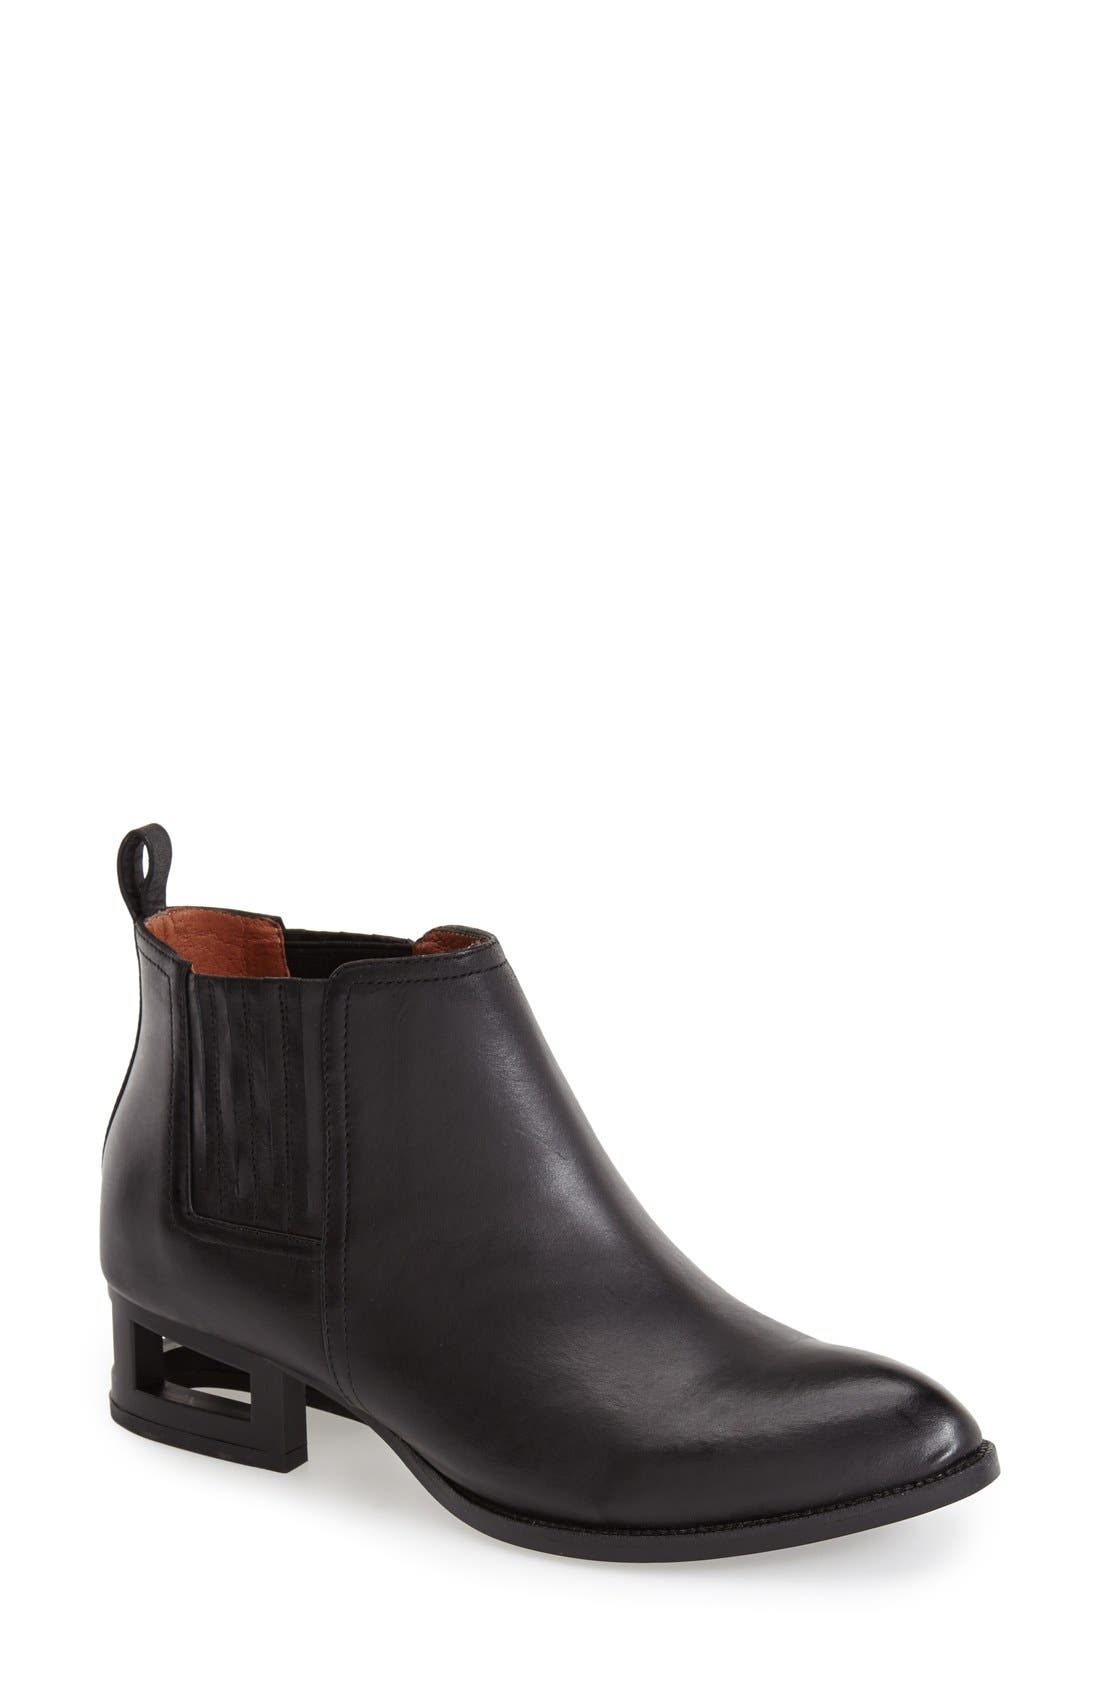 'Metcalf' Caged Heel Bootie,                             Main thumbnail 1, color,                             001